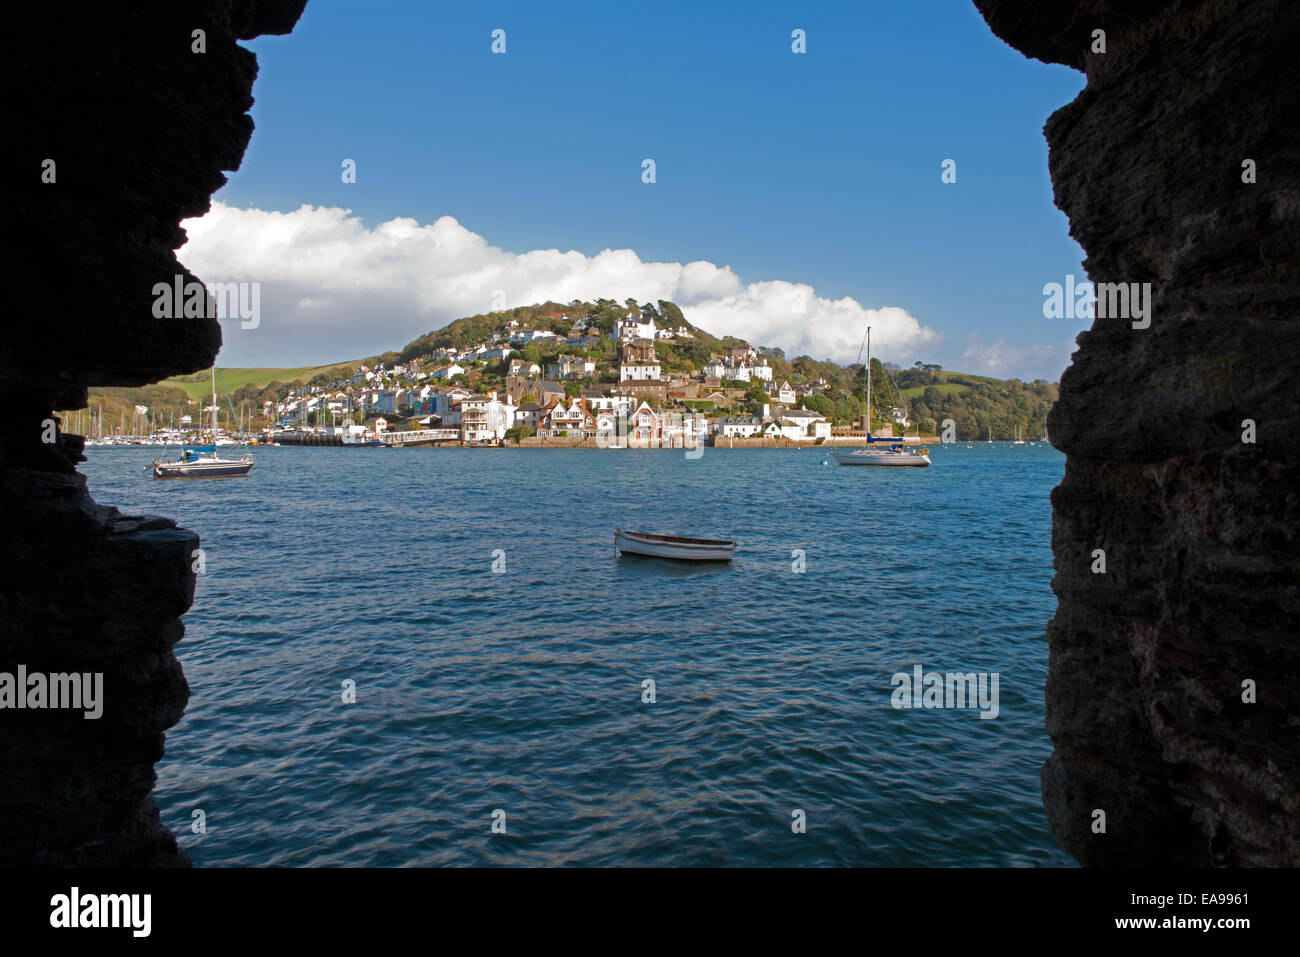 Kingswear and the River Dart, South Hams, taken from Bayard's Cove Fort, South Devon, England, Uk. - Stock Image